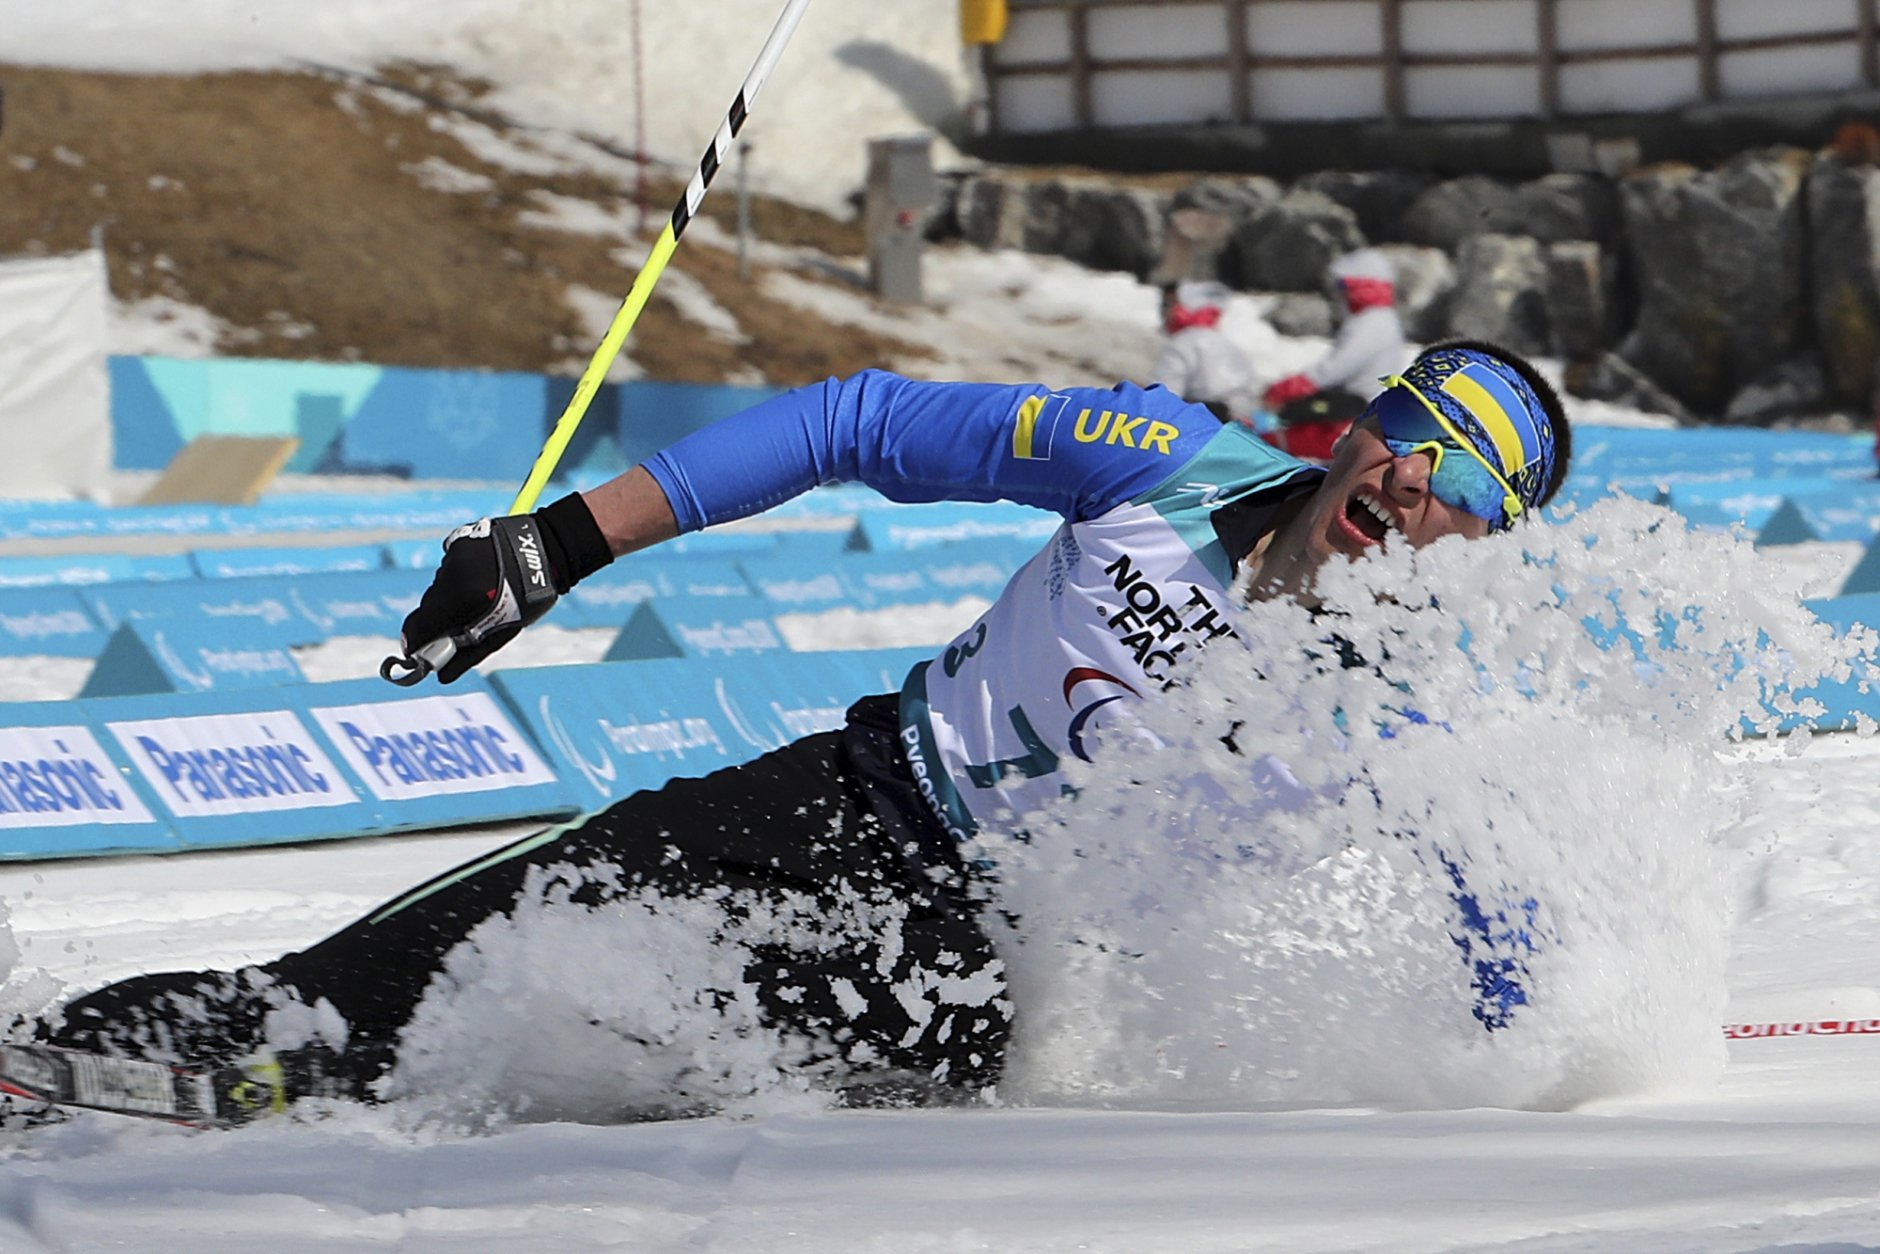 In this March 13, 2018 photo, Ihor Reptyukh of Ukraine collapses after crossing the finish line in the Biathlon Standing Men's 12.5km event at the Alpensia Biathlon Centre for the 2018 Winter Paralympics held in Pyeongchang, South Korea. Reptyukh finished second to clinch the silver medal. (AP Photo/Ng Han Guan, File)